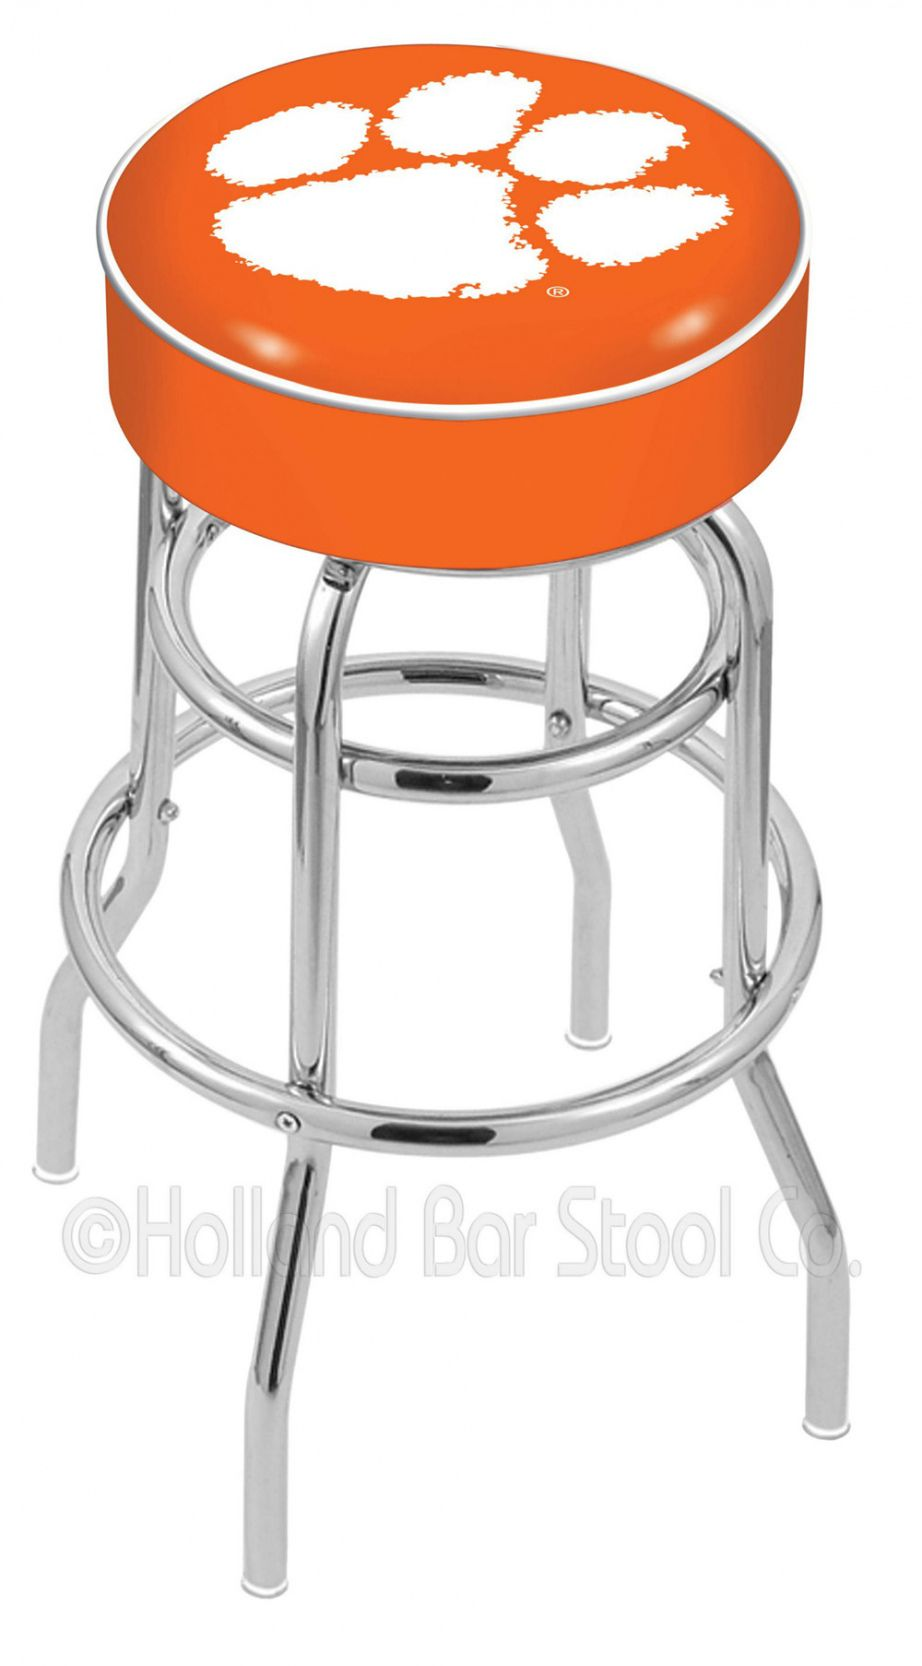 50 bar stools grand rapids mi modern style furniture check more at http